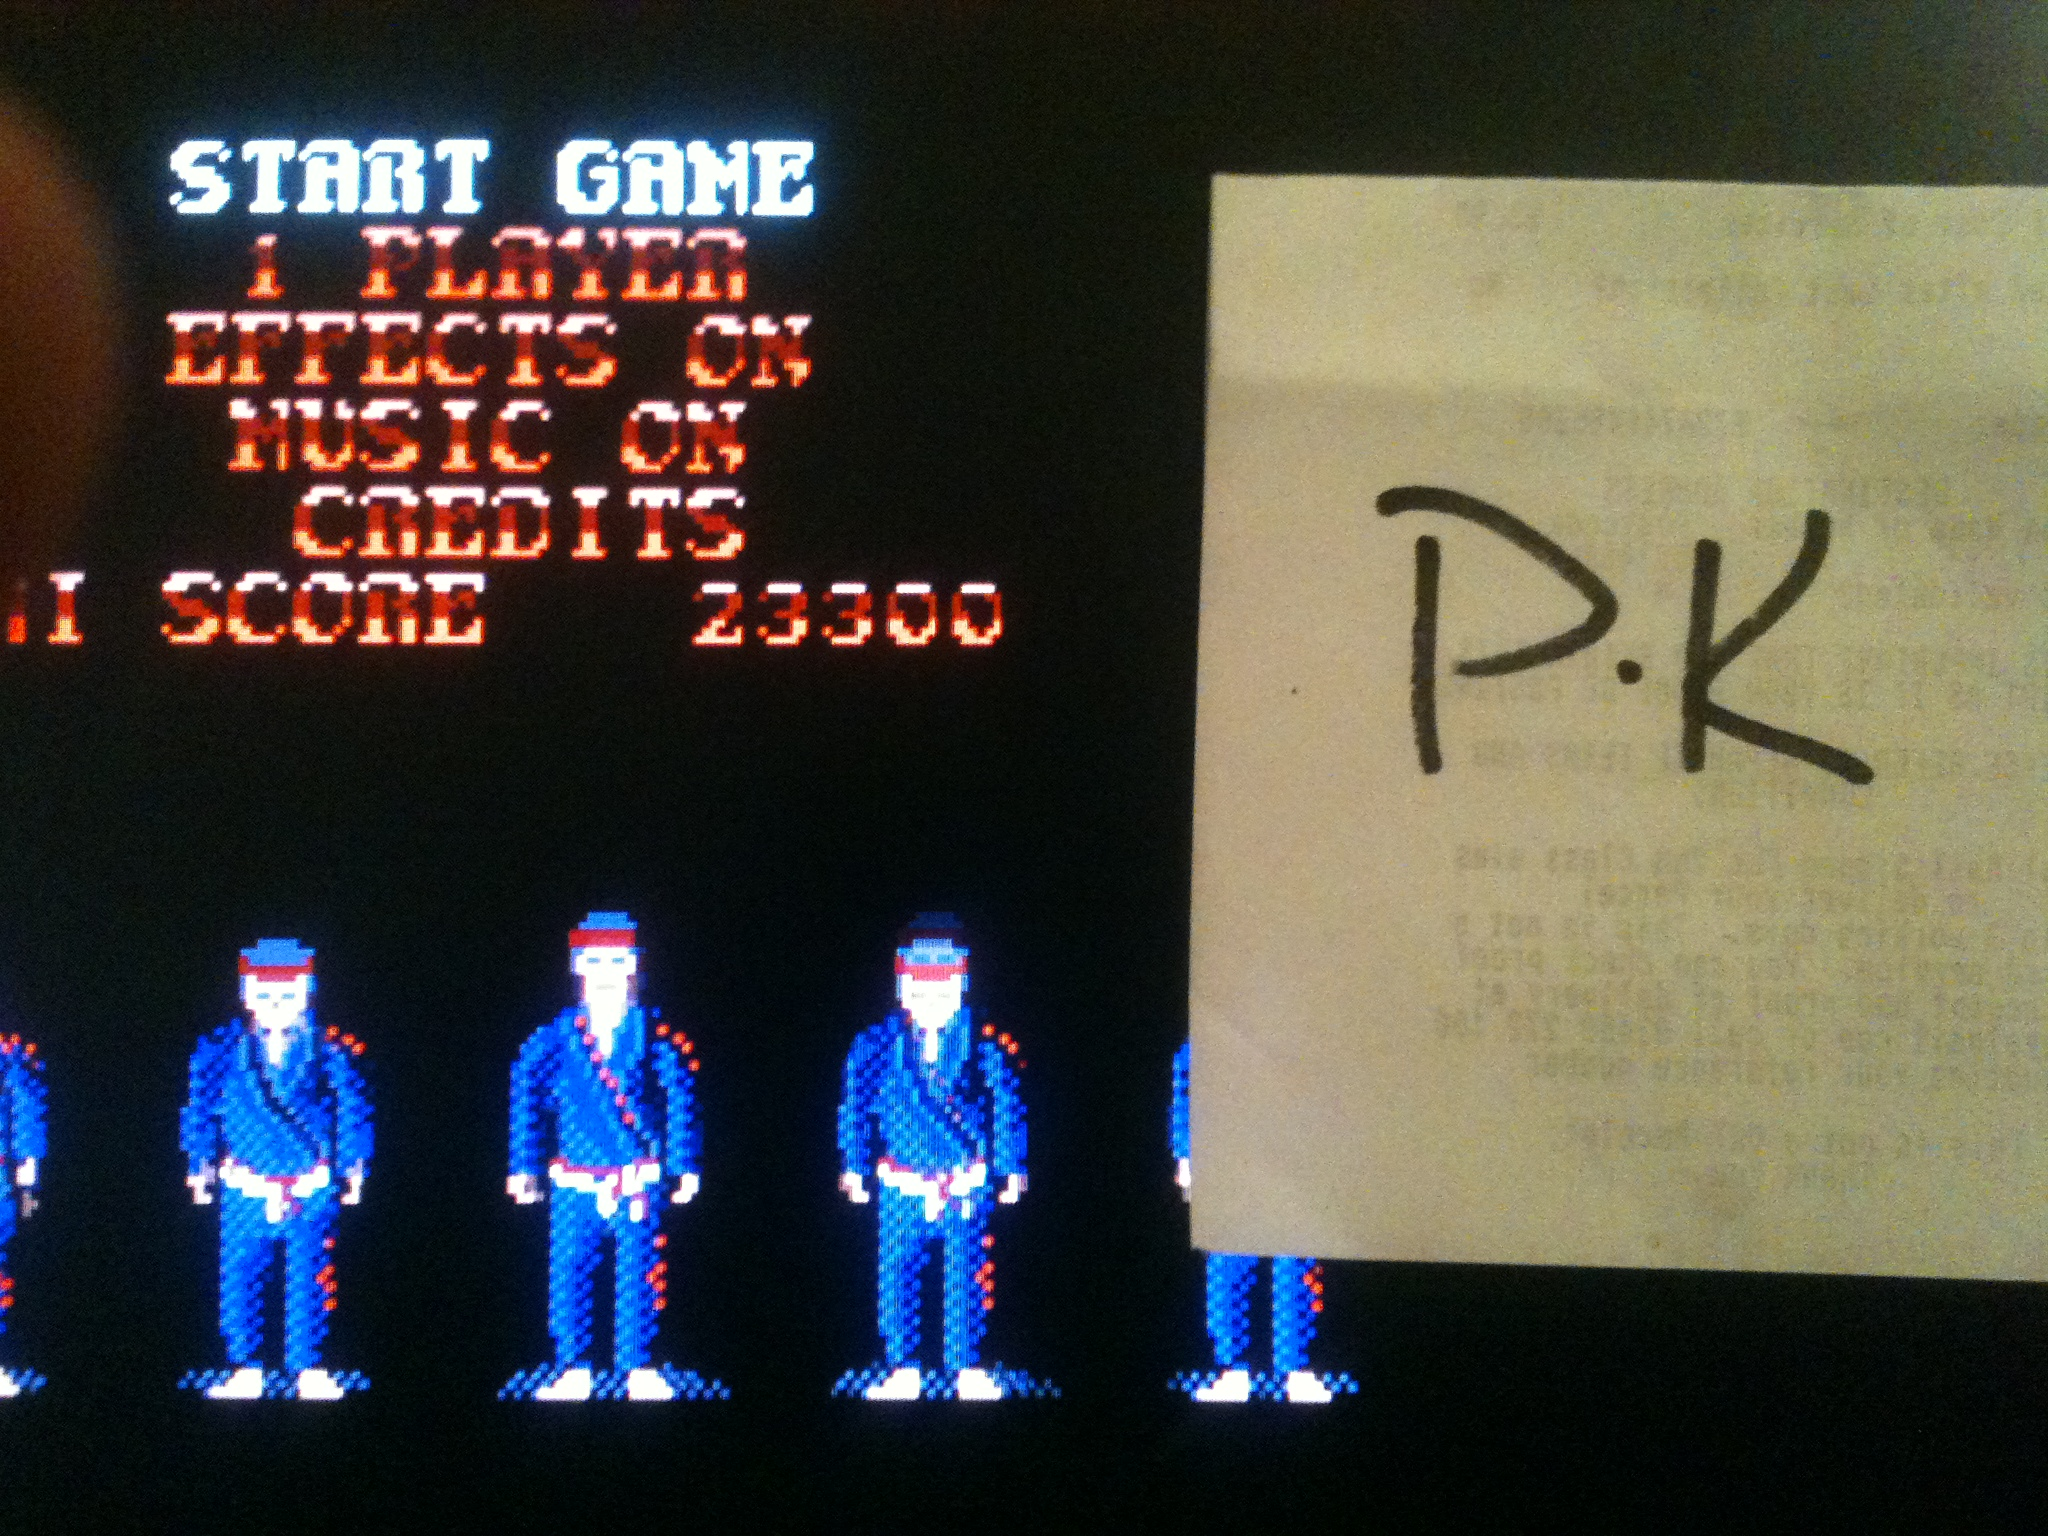 kernzy: ST Karate (Atari ST Emulated) 23,300 points on 2015-02-18 20:42:19